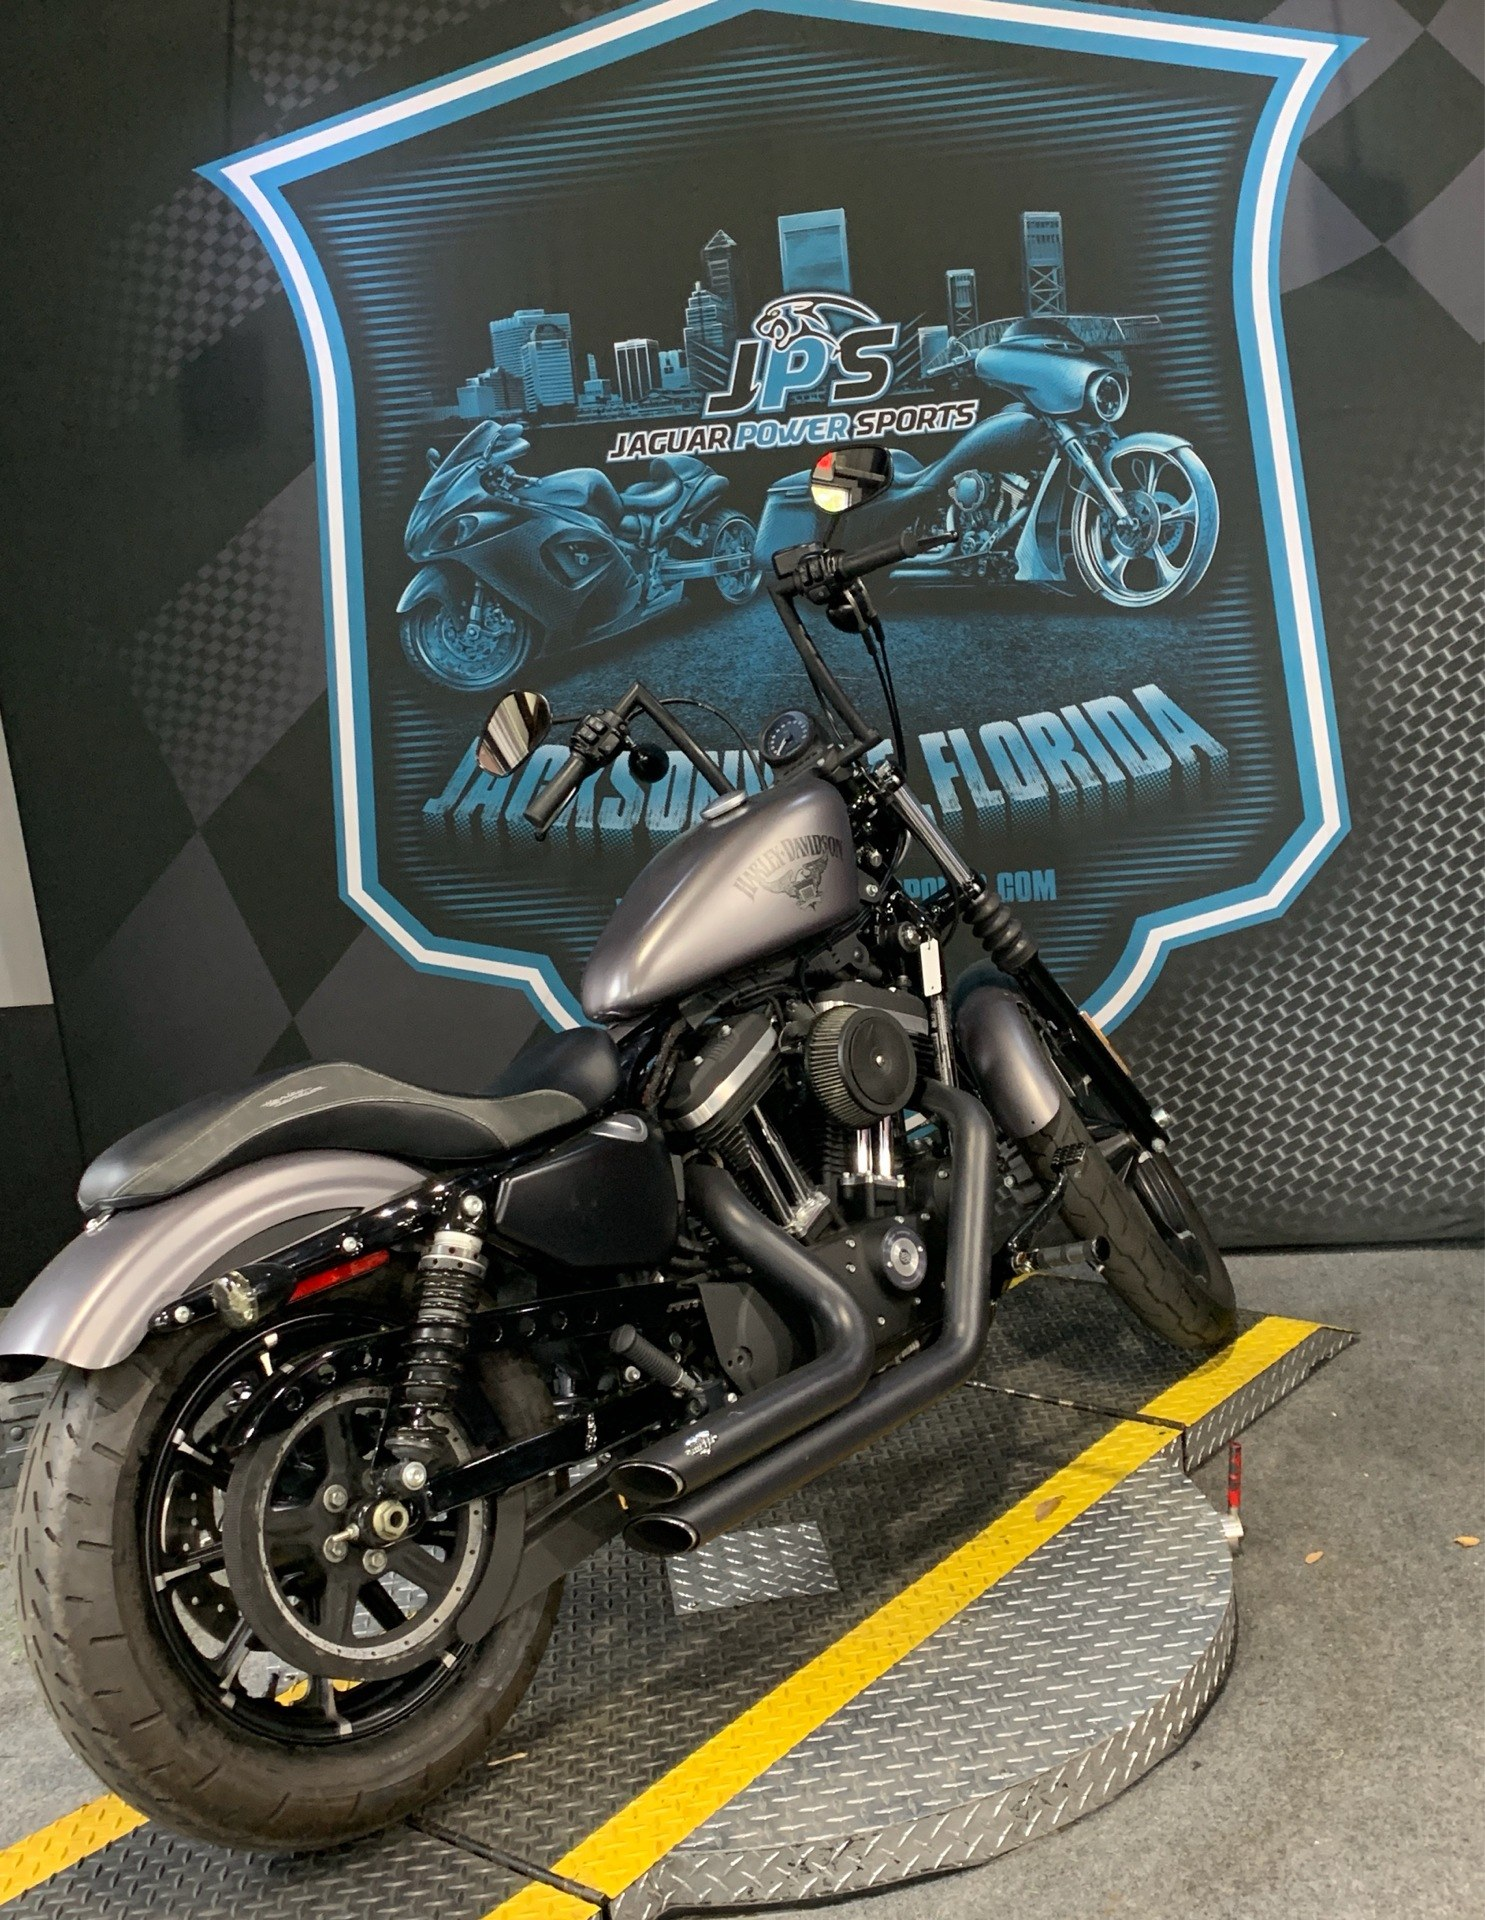 2017 Harley-Davidson Iron 883™ in Jacksonville, Florida - Photo 2